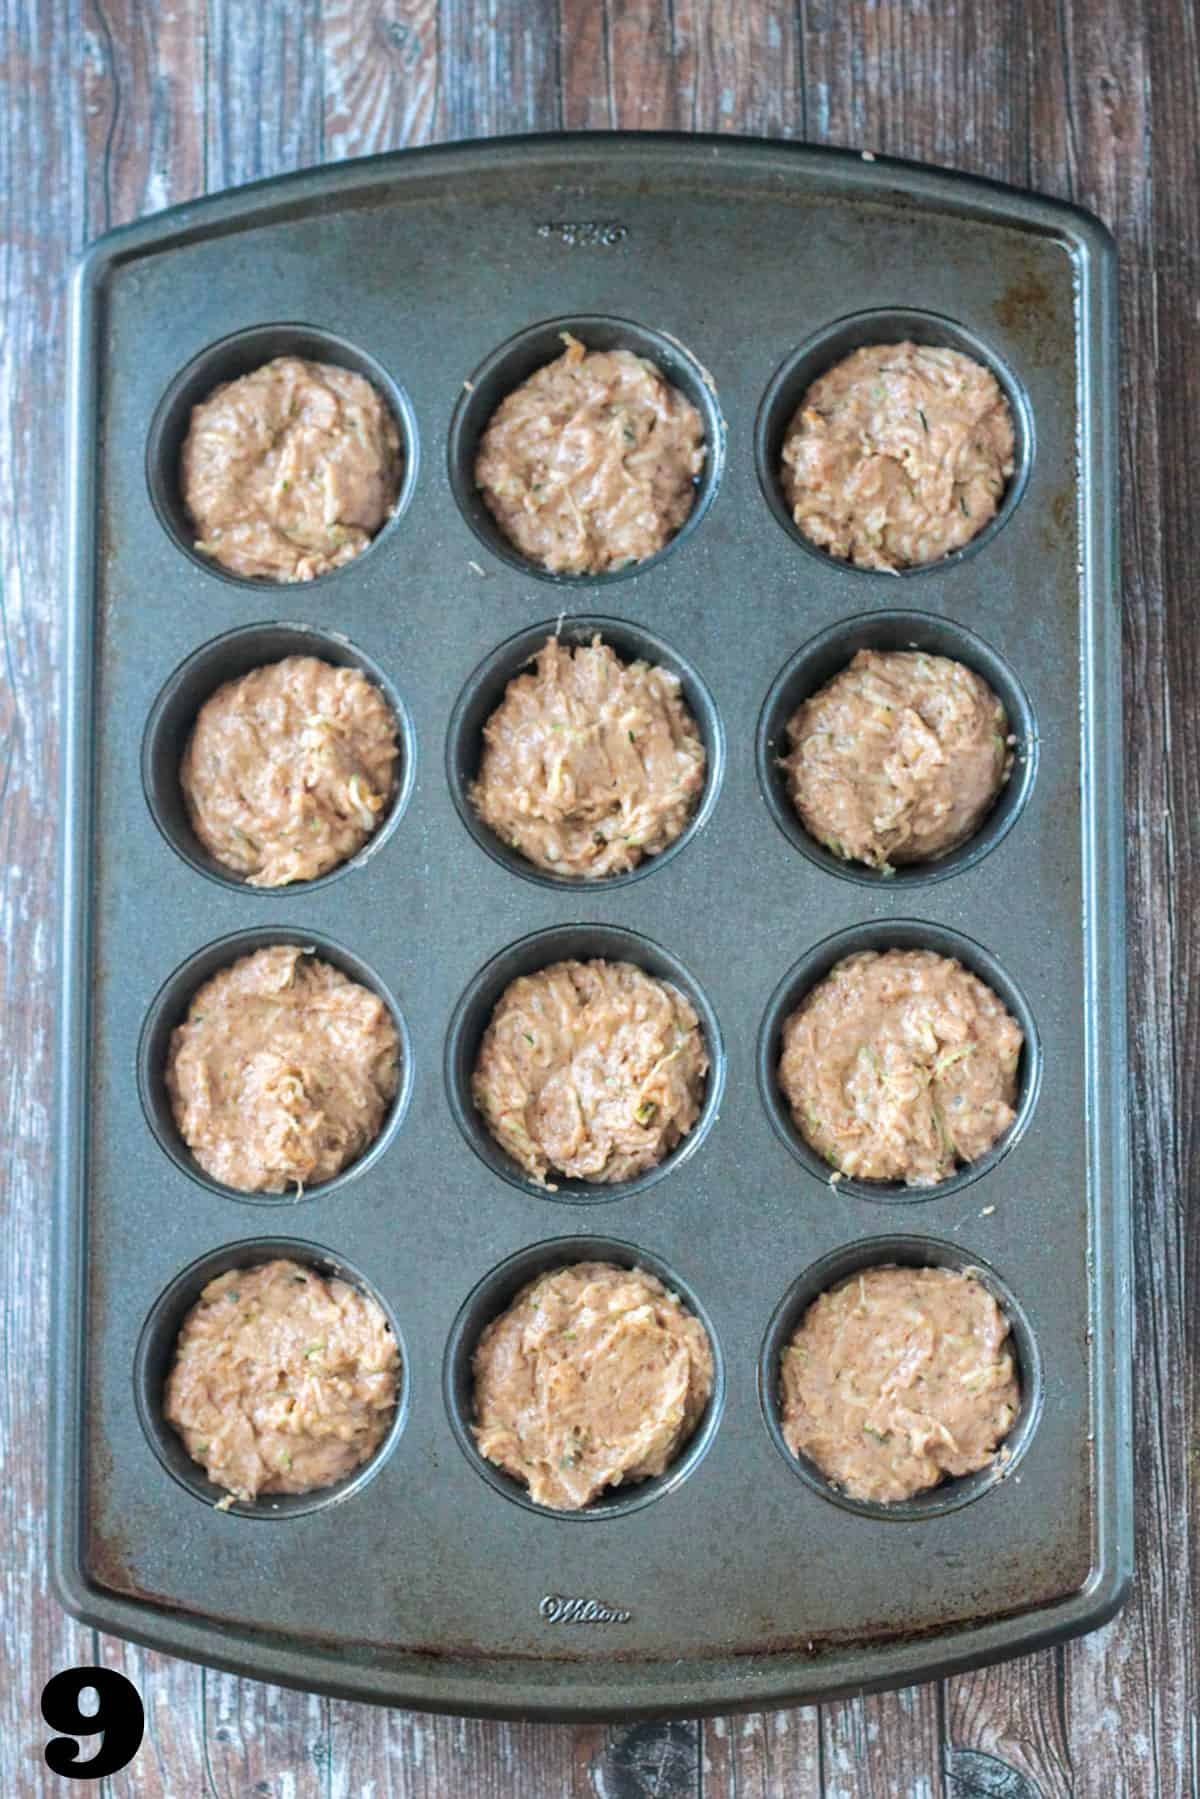 Raw batter in a 12-cavity muffin tin ready to be baked.